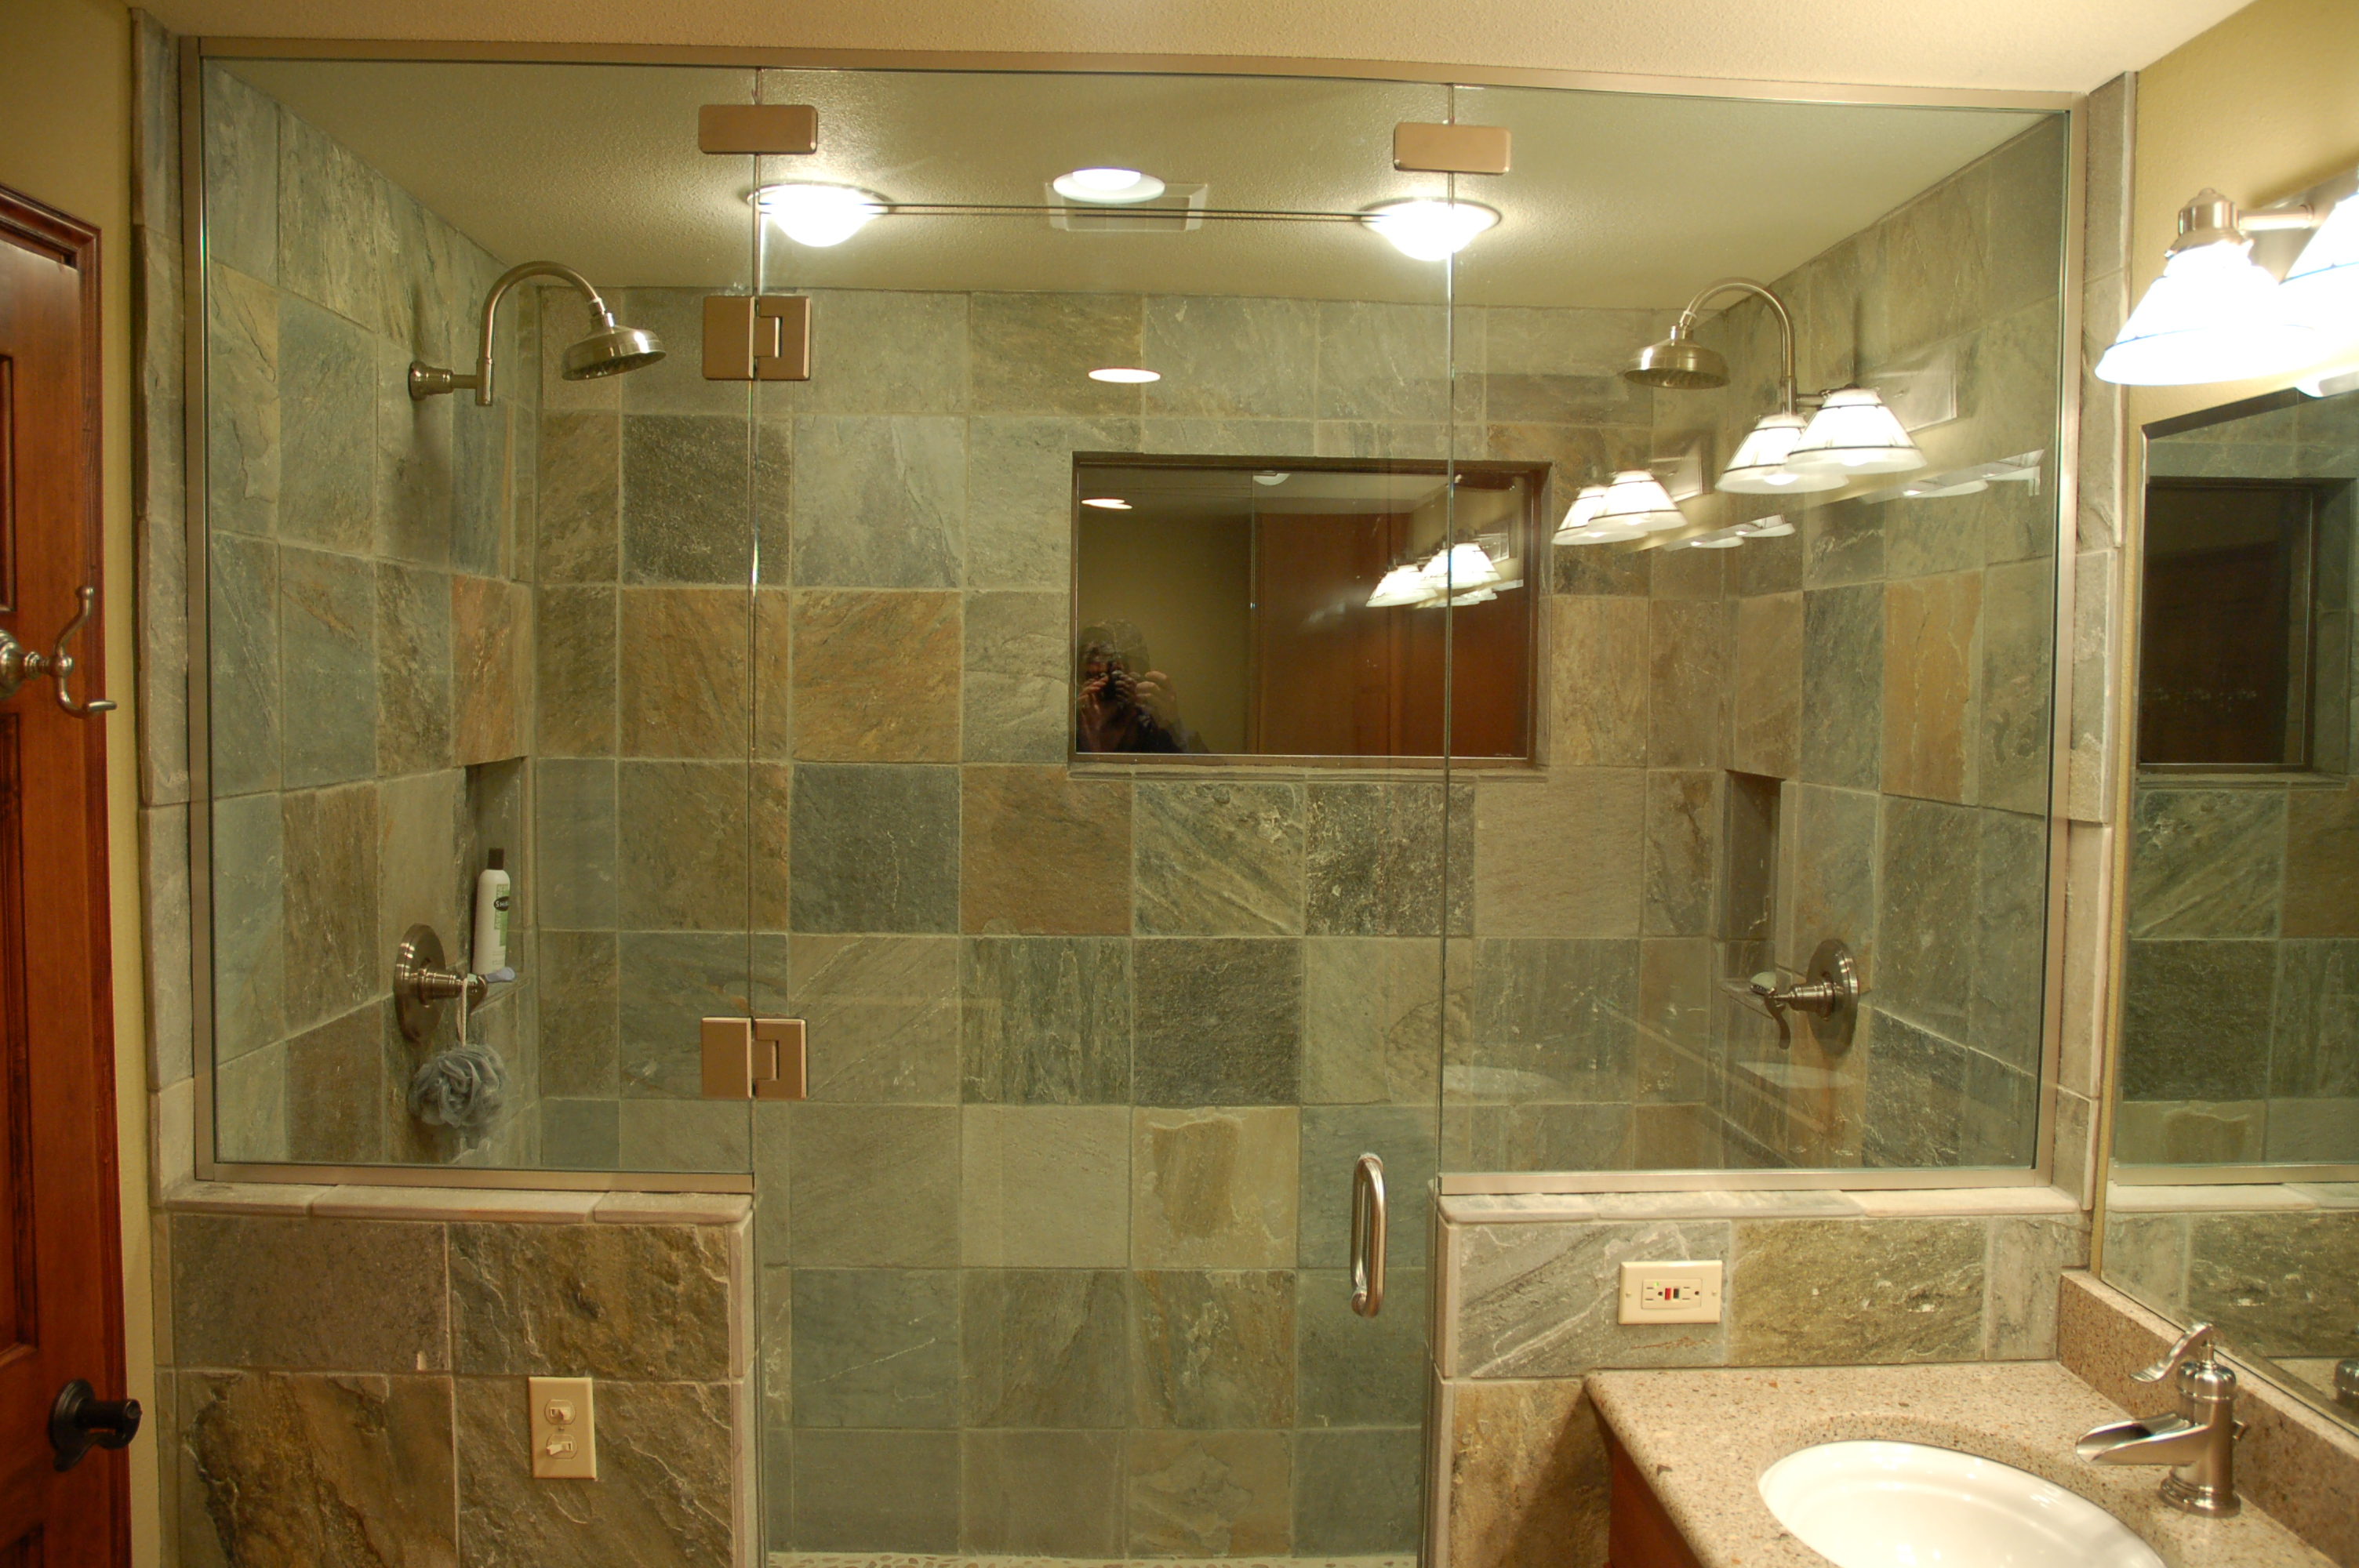 Slate bathroom tile benefits bathroom slate tiles for Bath tiles design ideas